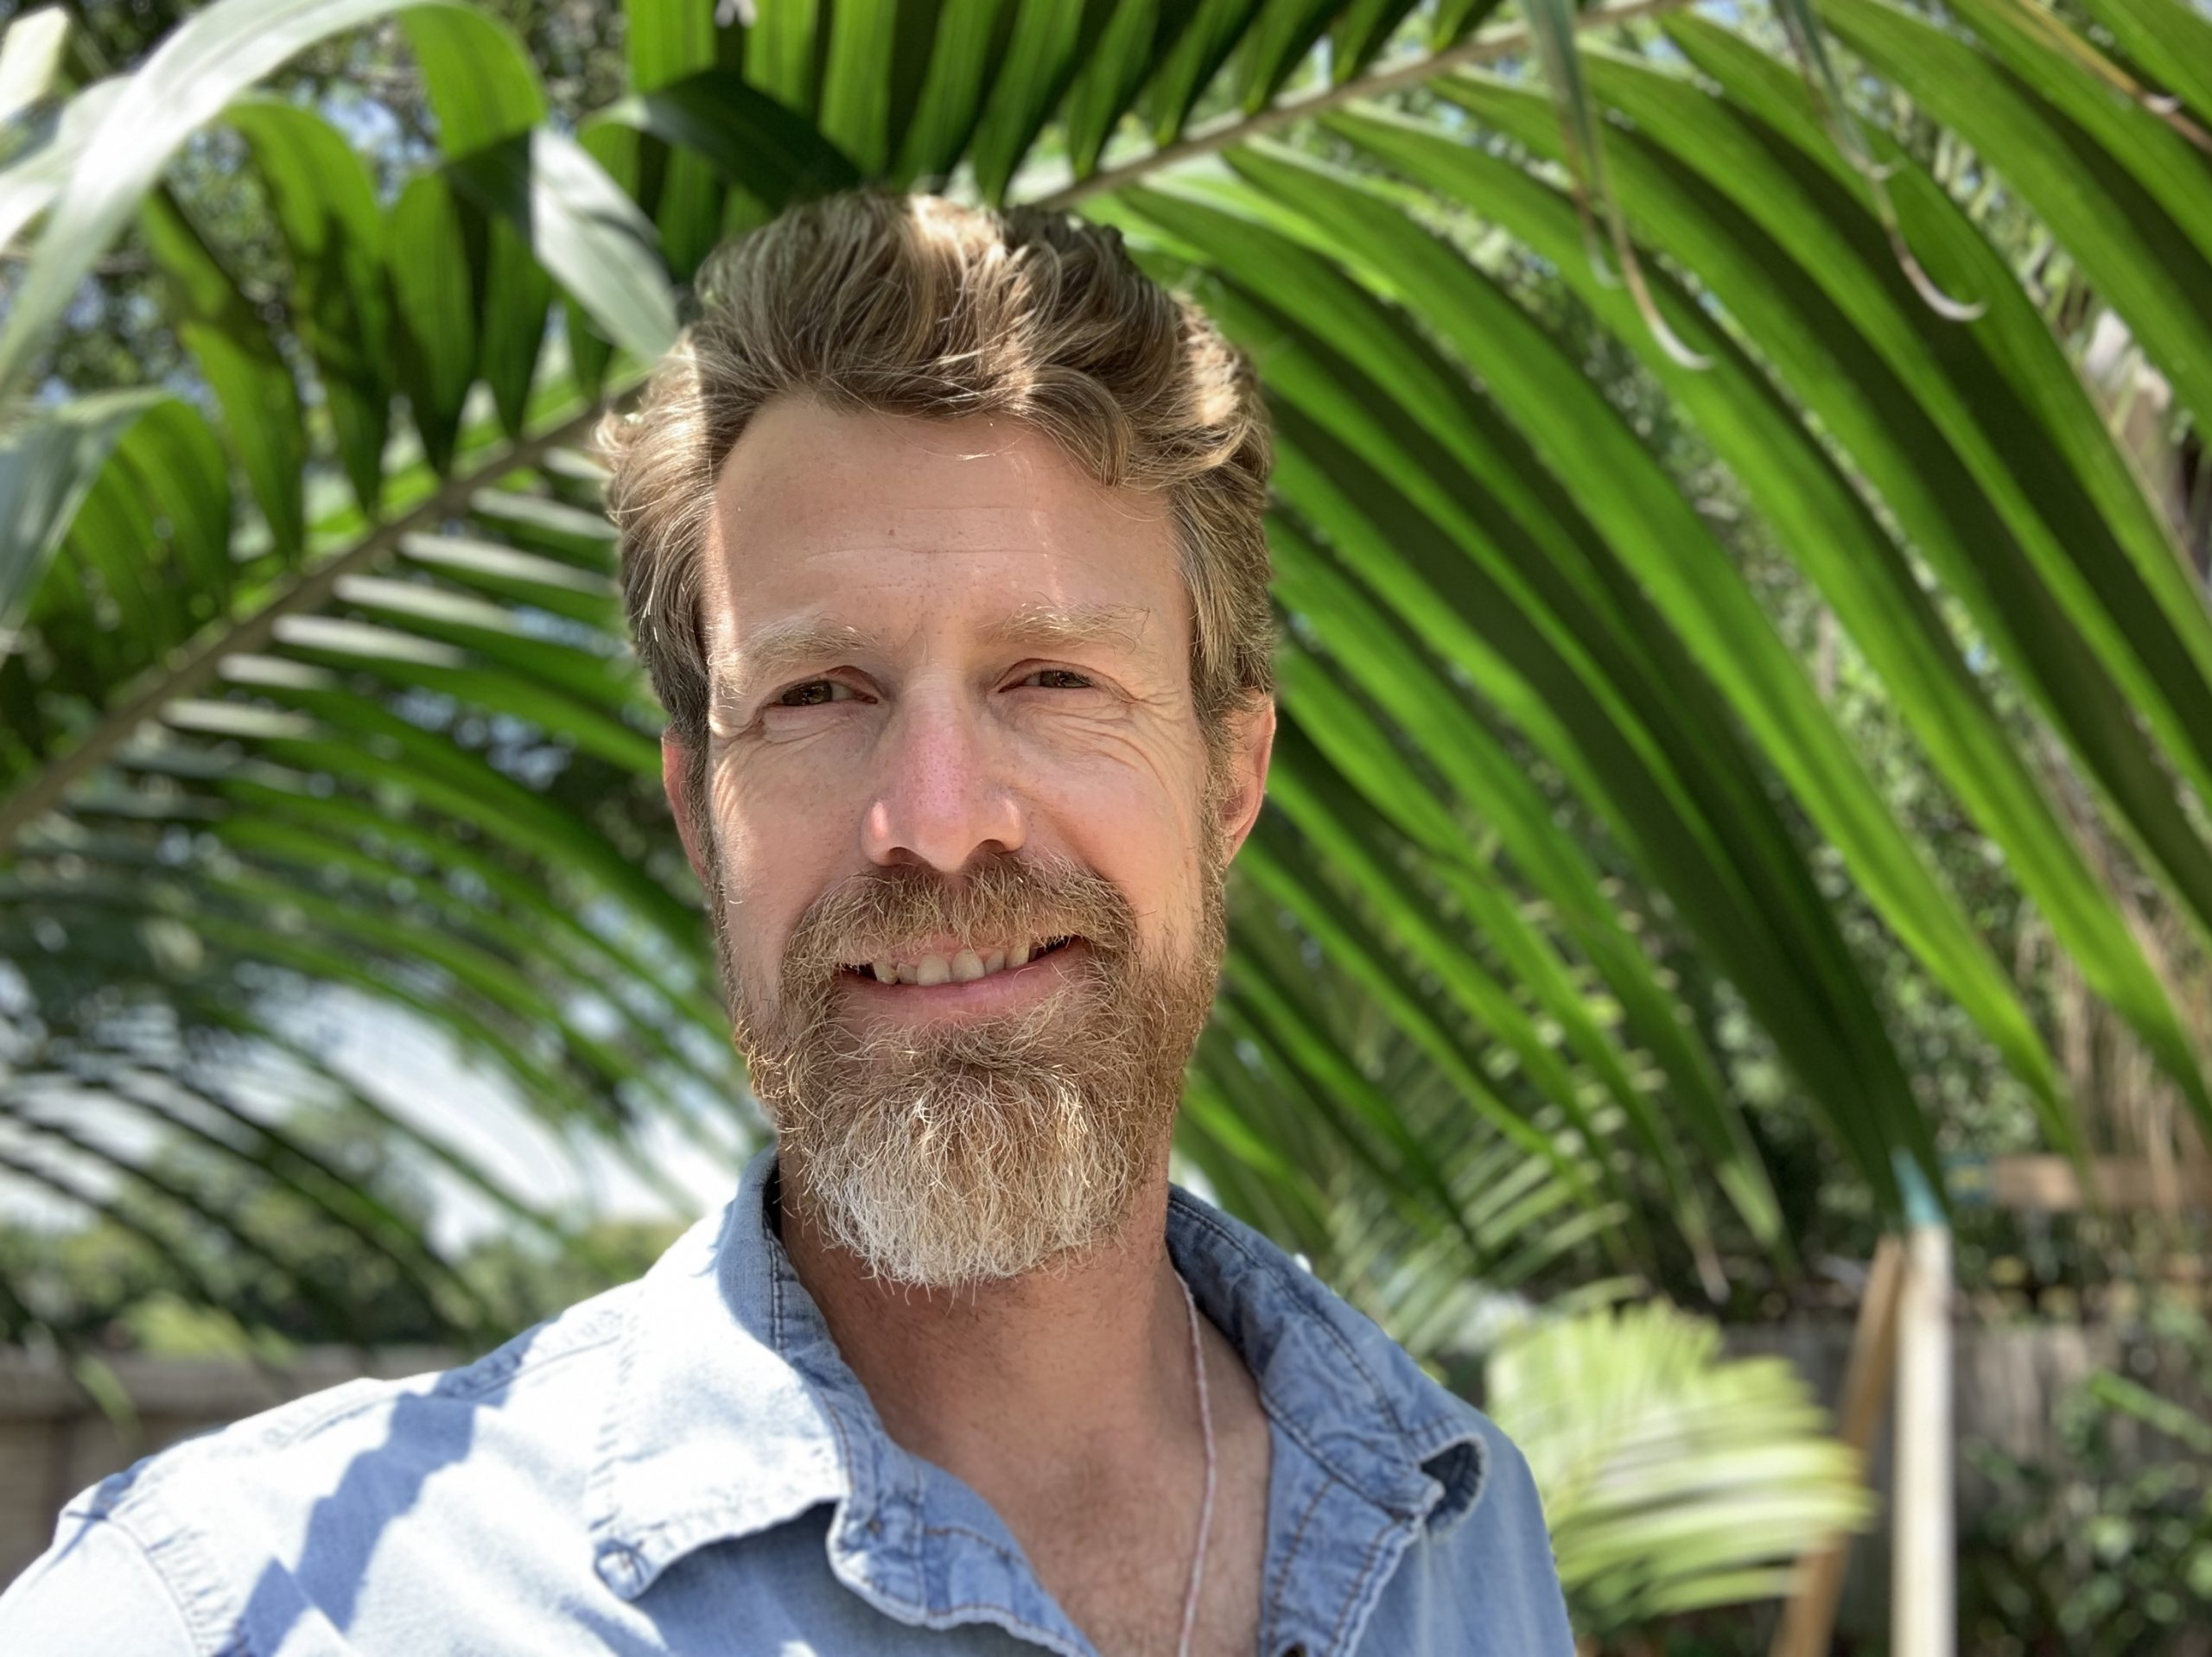 Chad Washburn, Vice President of Conservation at Naples Botanical Garden